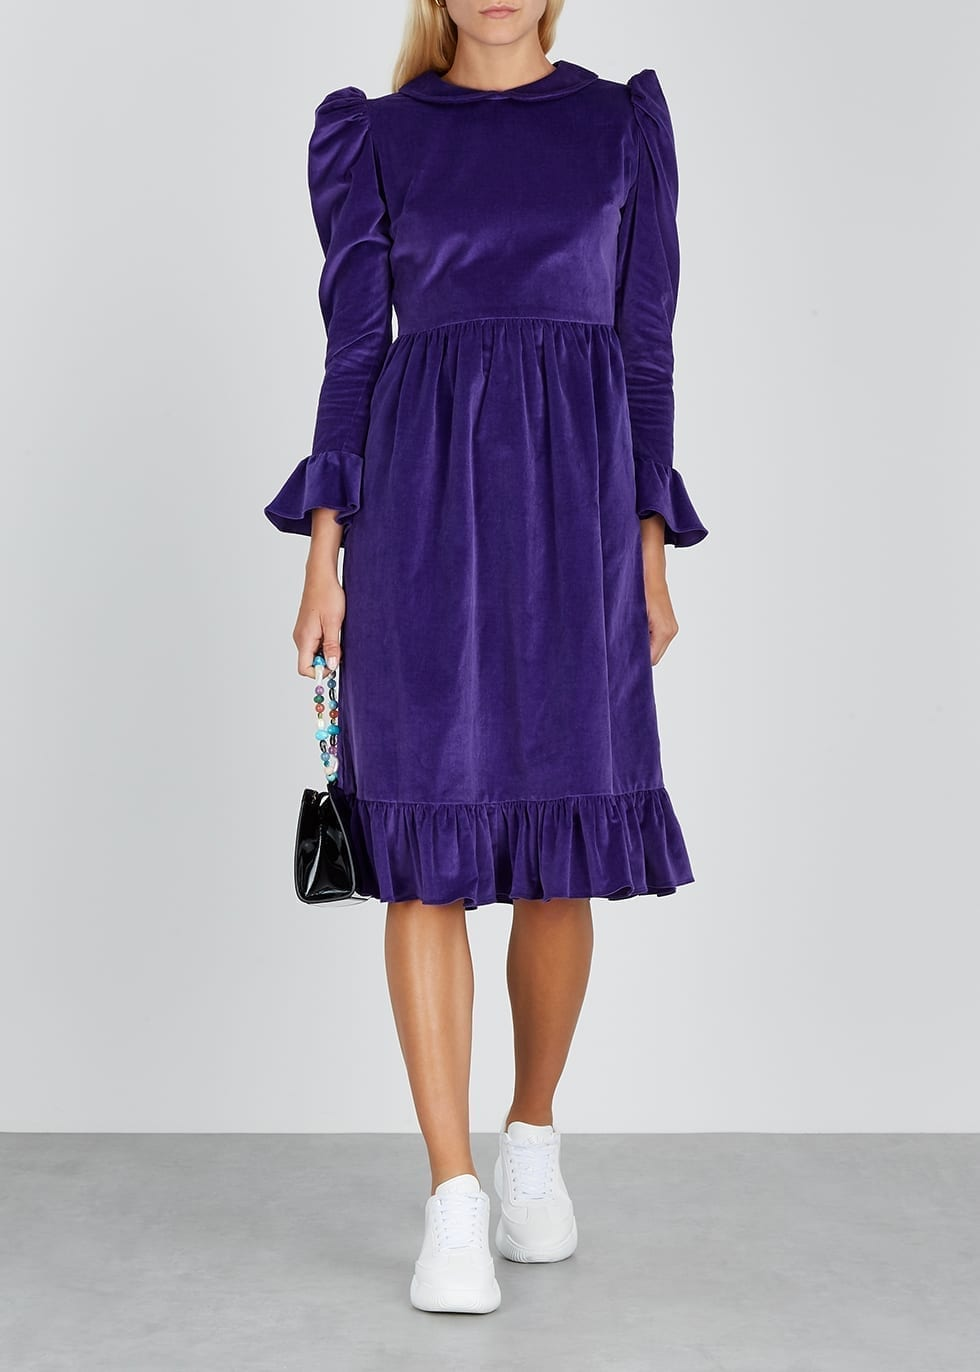 BATSHEVA Purple Velvet Midi Dress